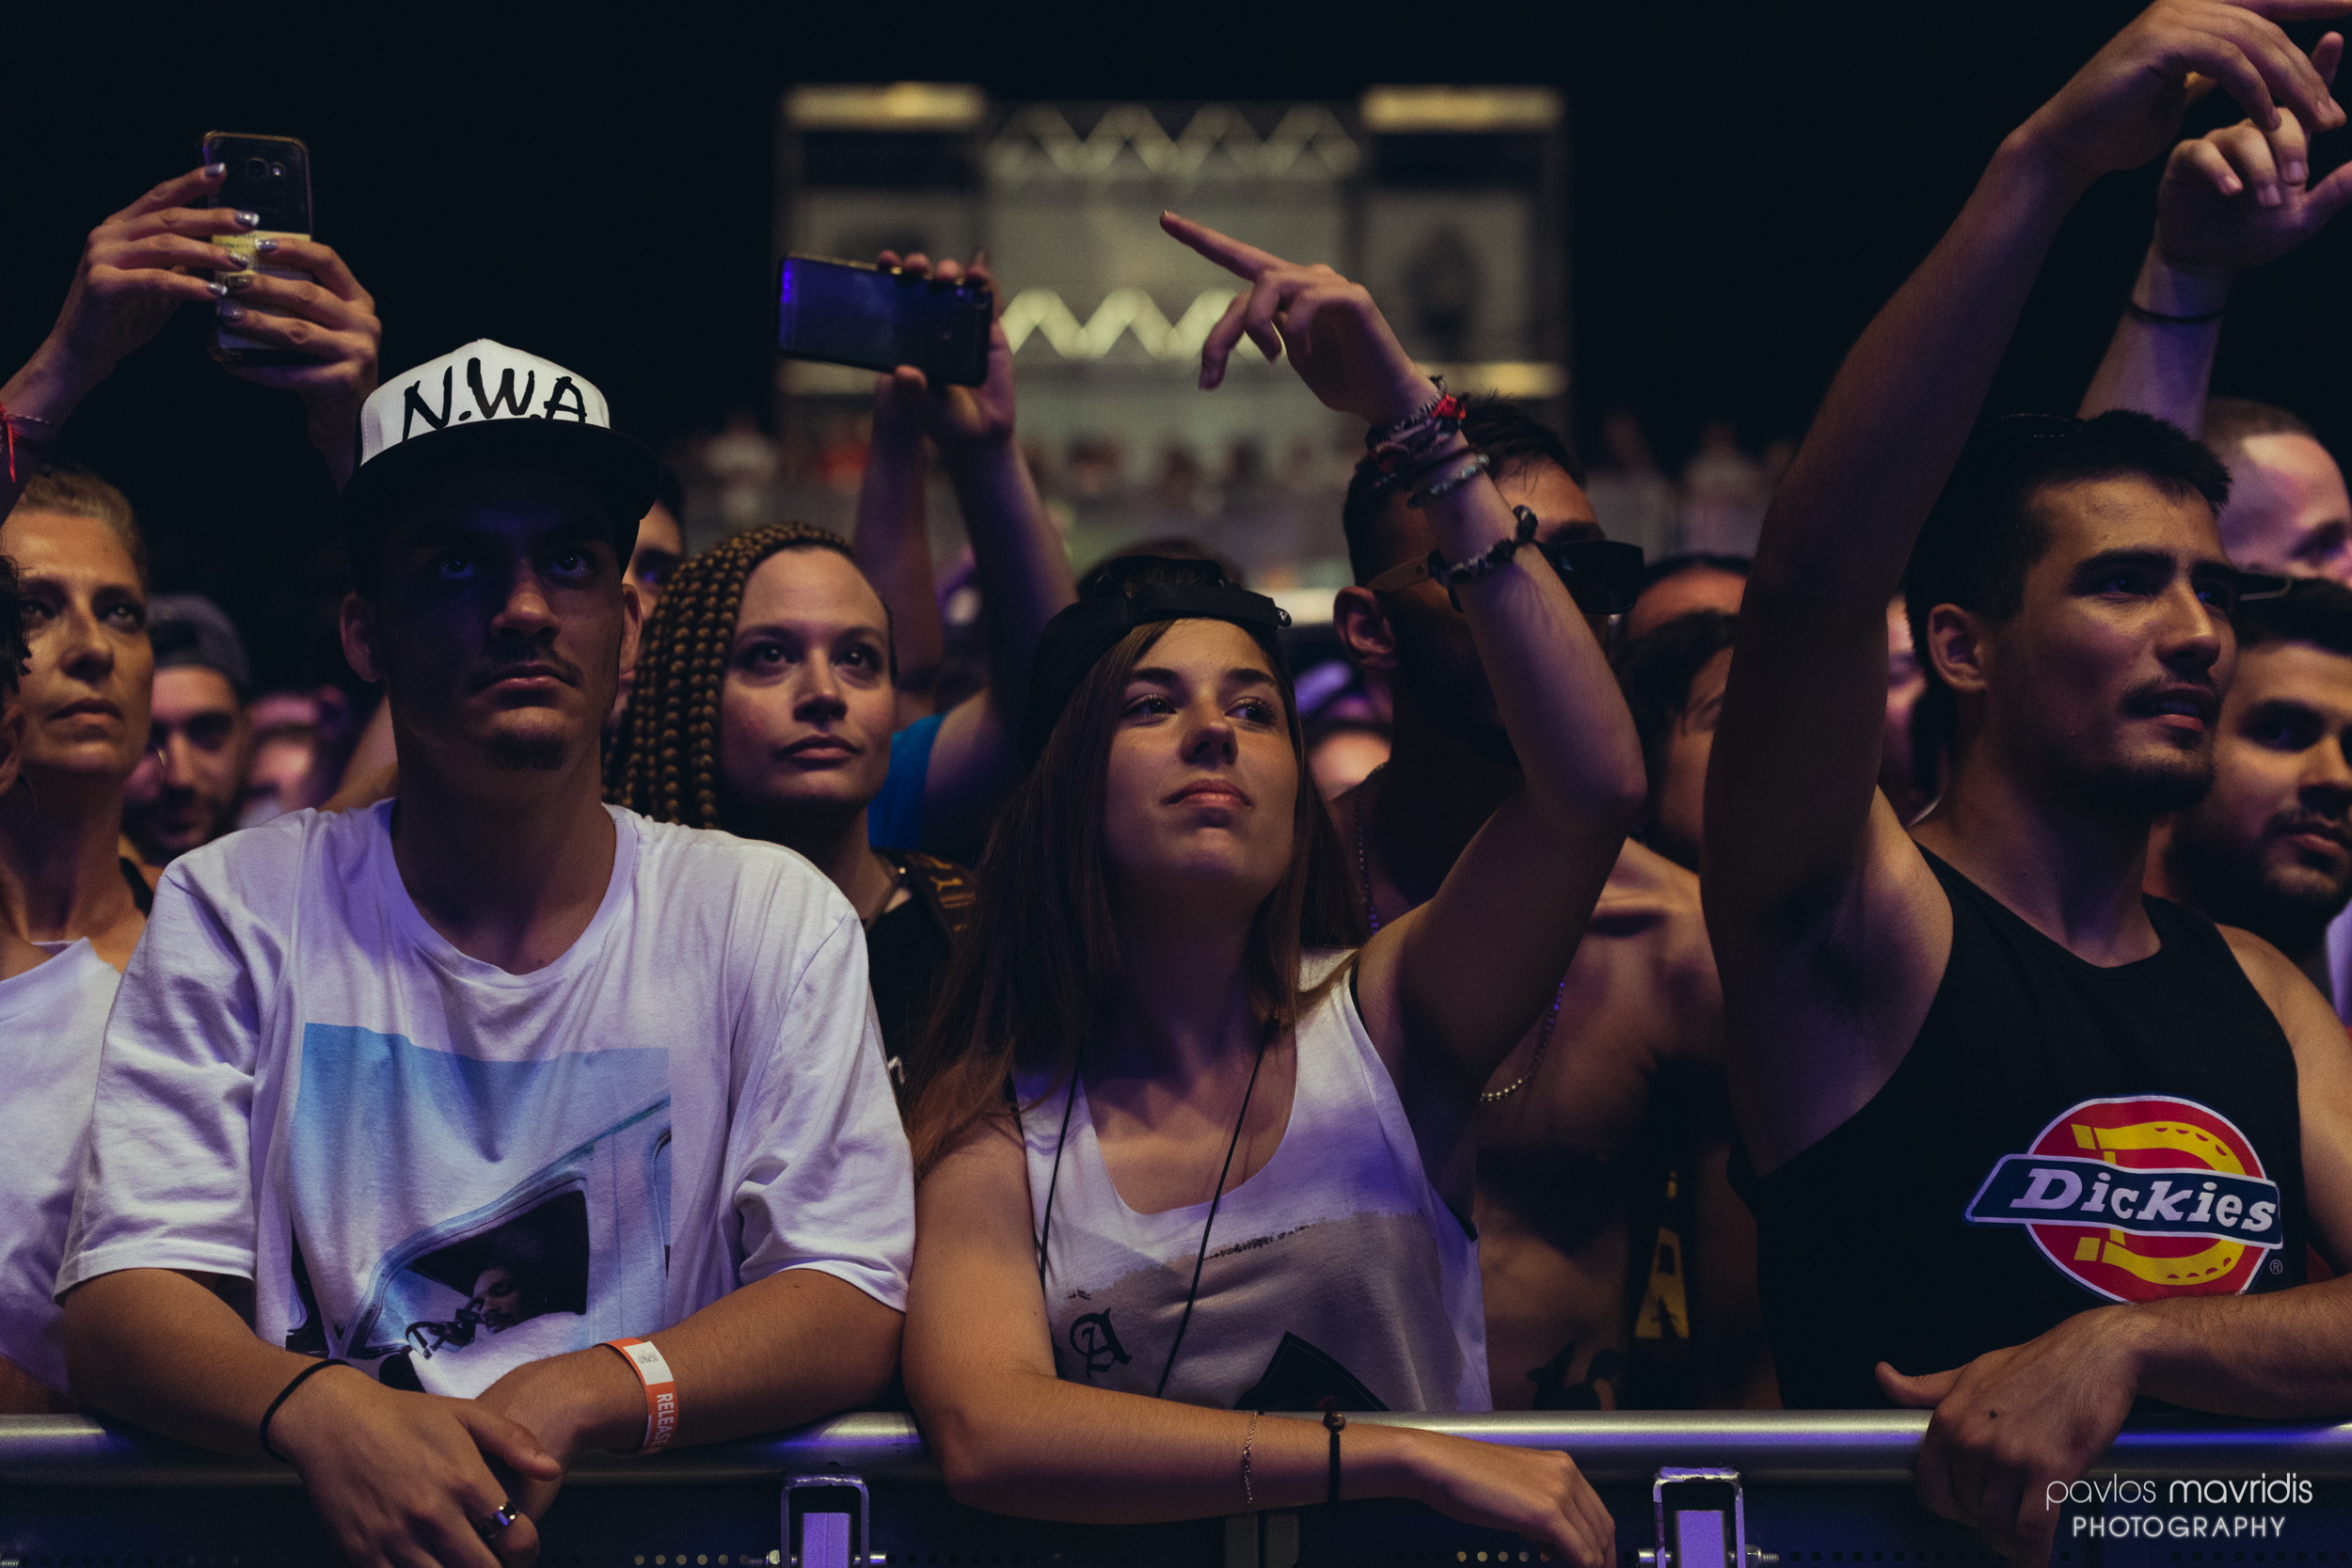 Cypress Hill_Release Athens 2019_02_hires_web.jpg